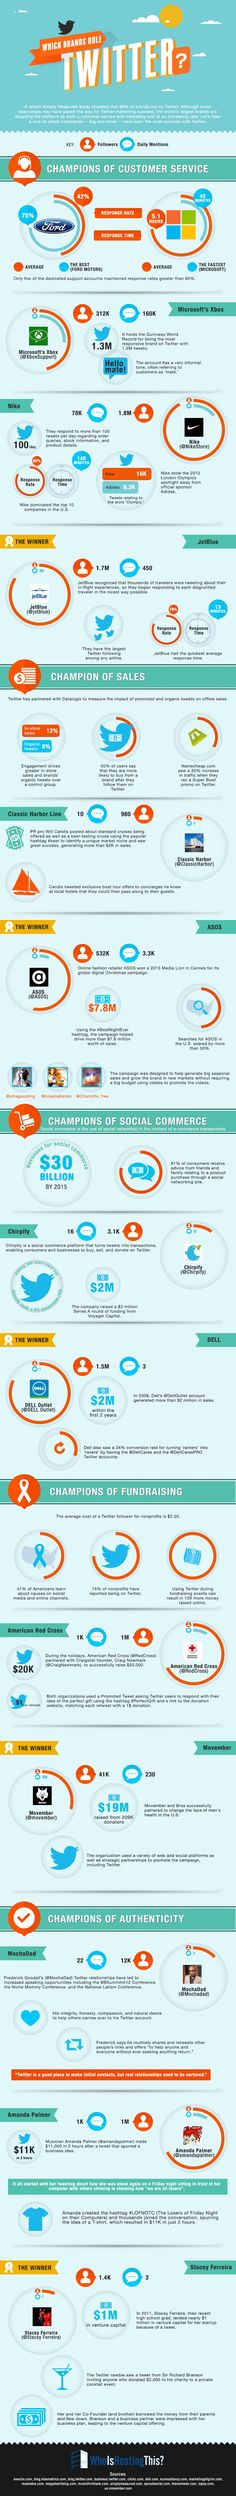 Using Twitter to Get Ahead: Which Brands Rule Twitter? [Infographics]